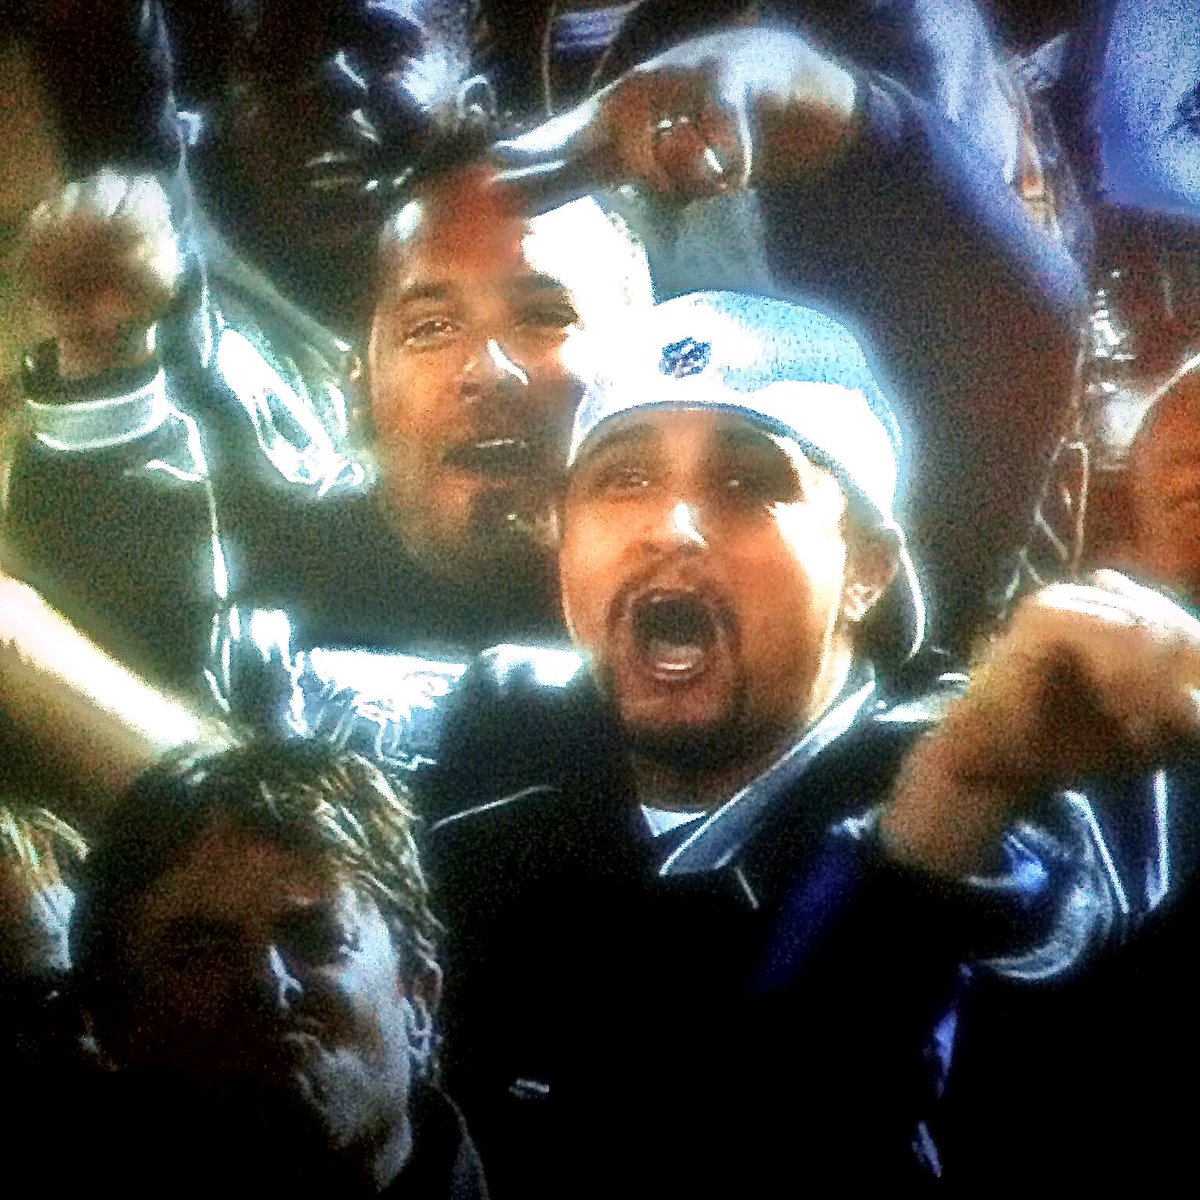 That time in 2012 when the camera cut to my fam turning up on #MNF 🙌🏽 #RaiderNation